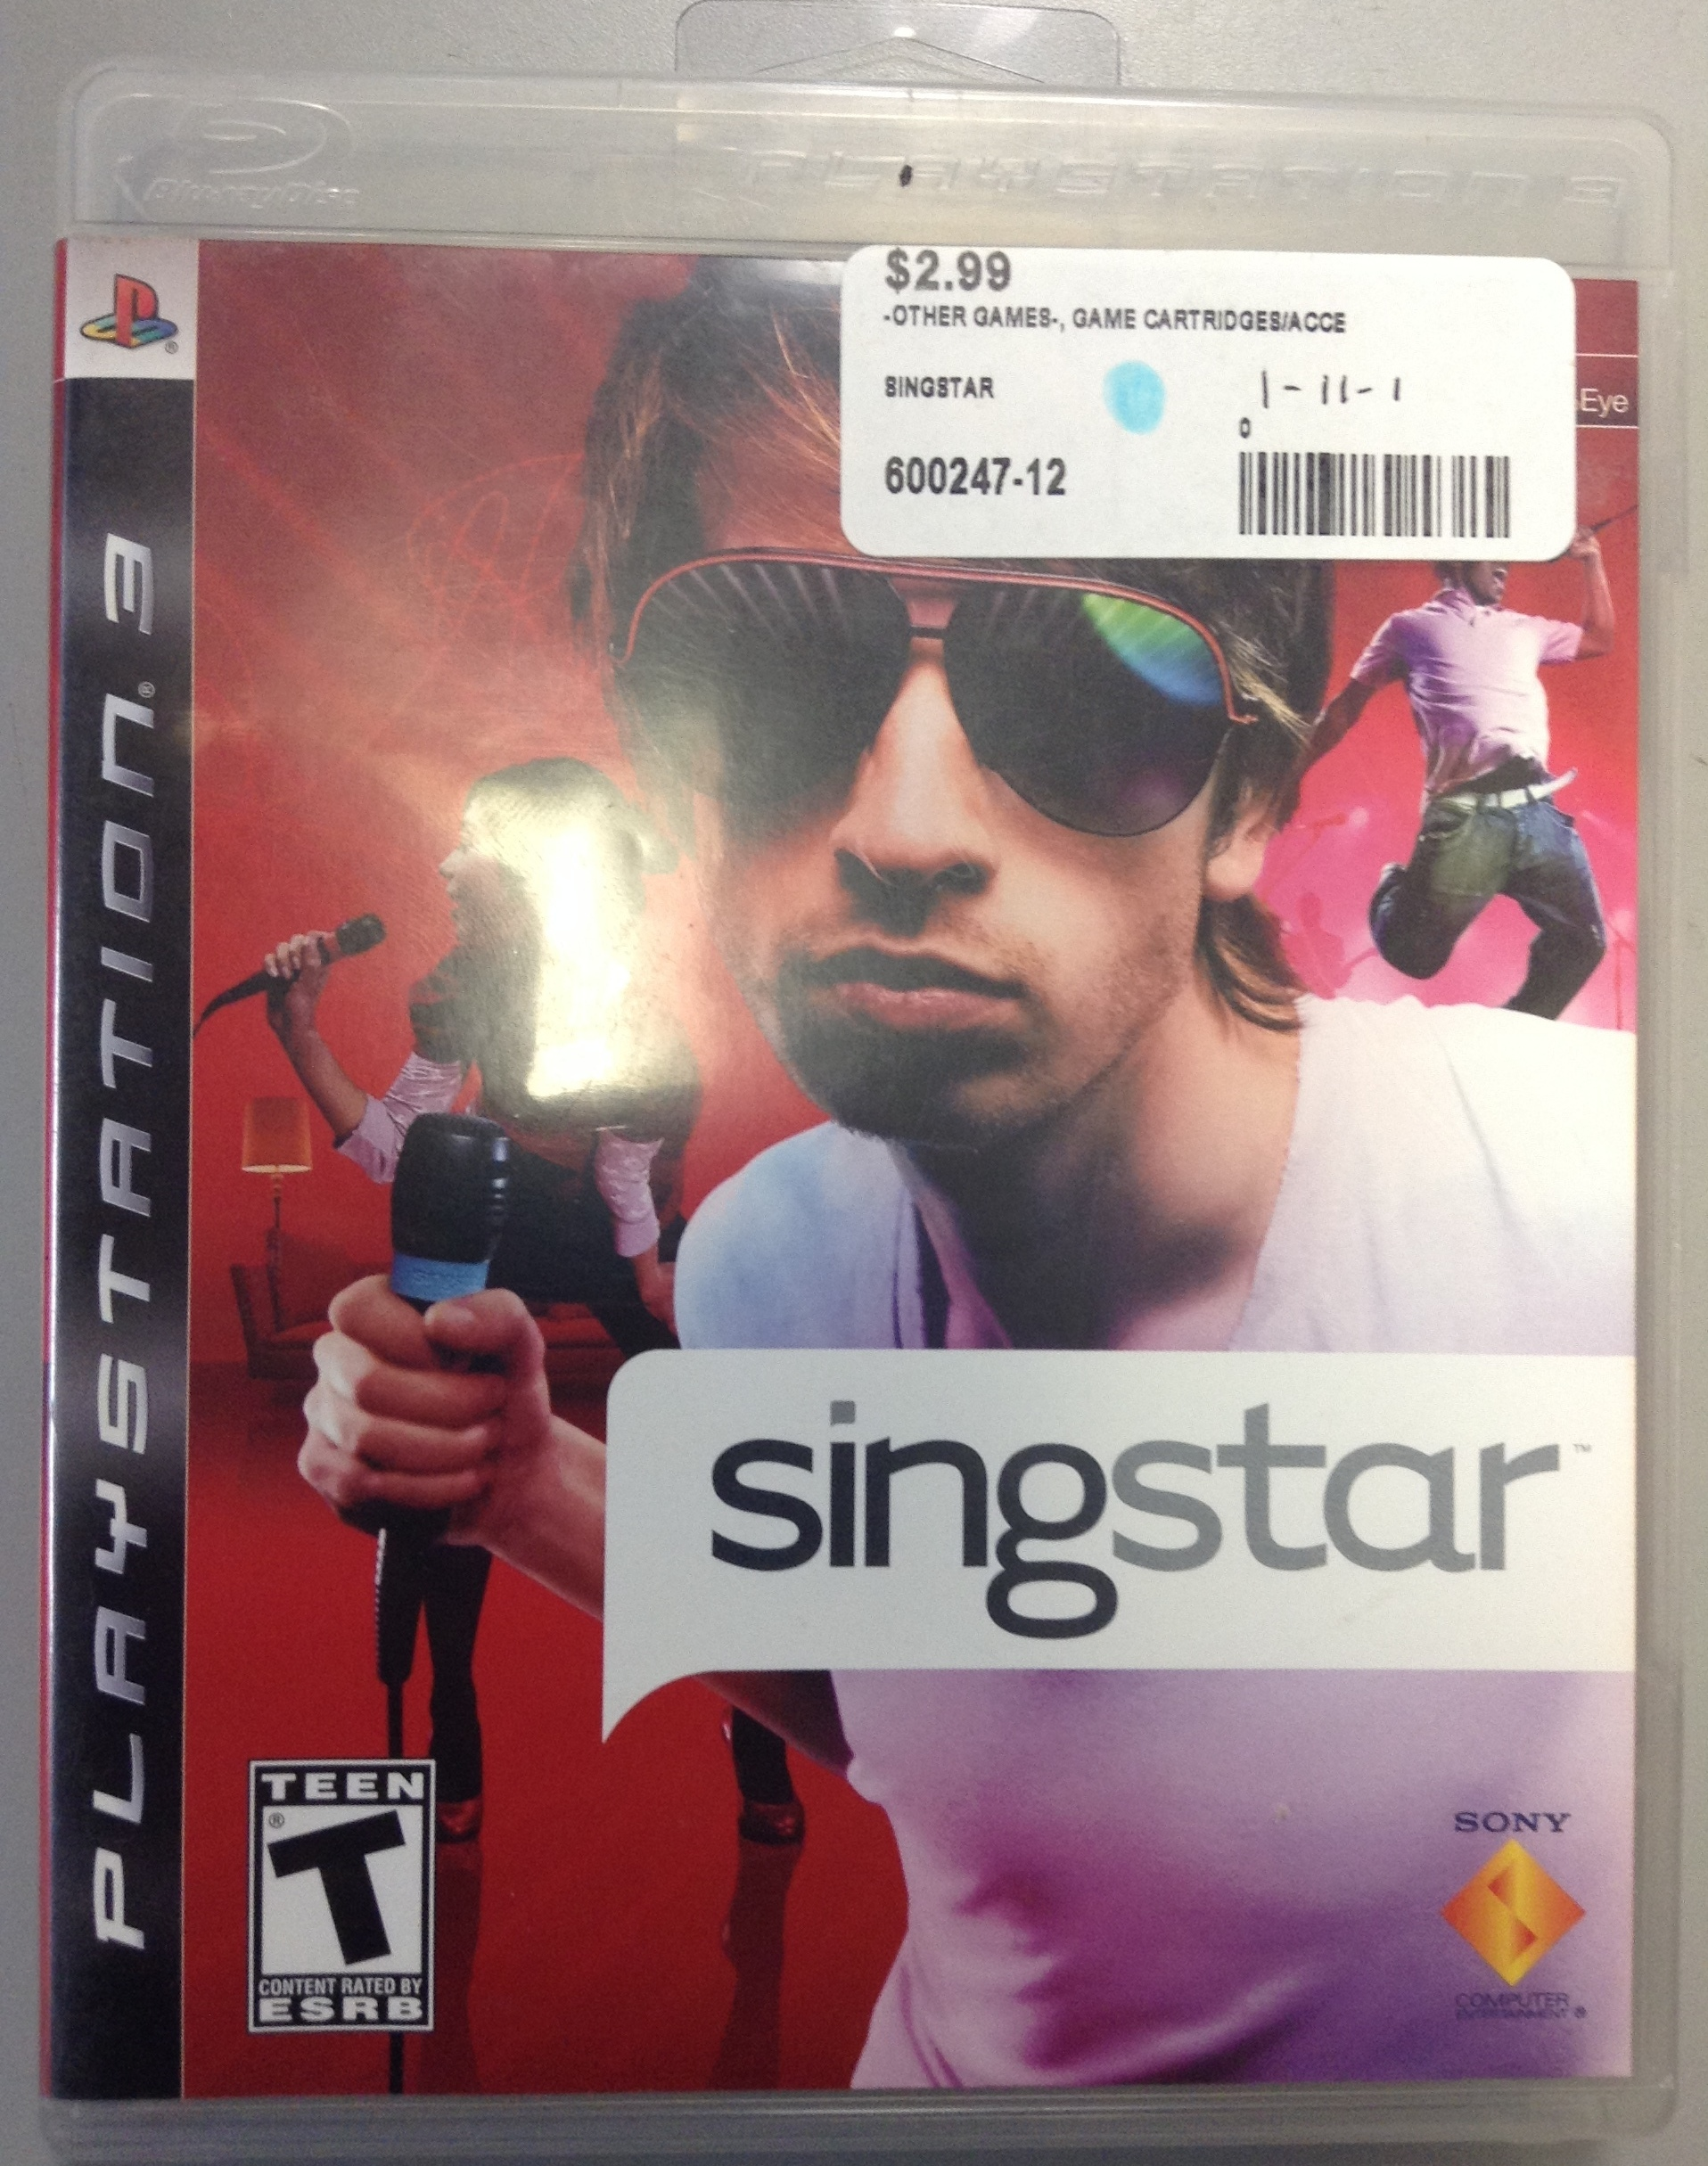 SINGSTAR FOR PS 3